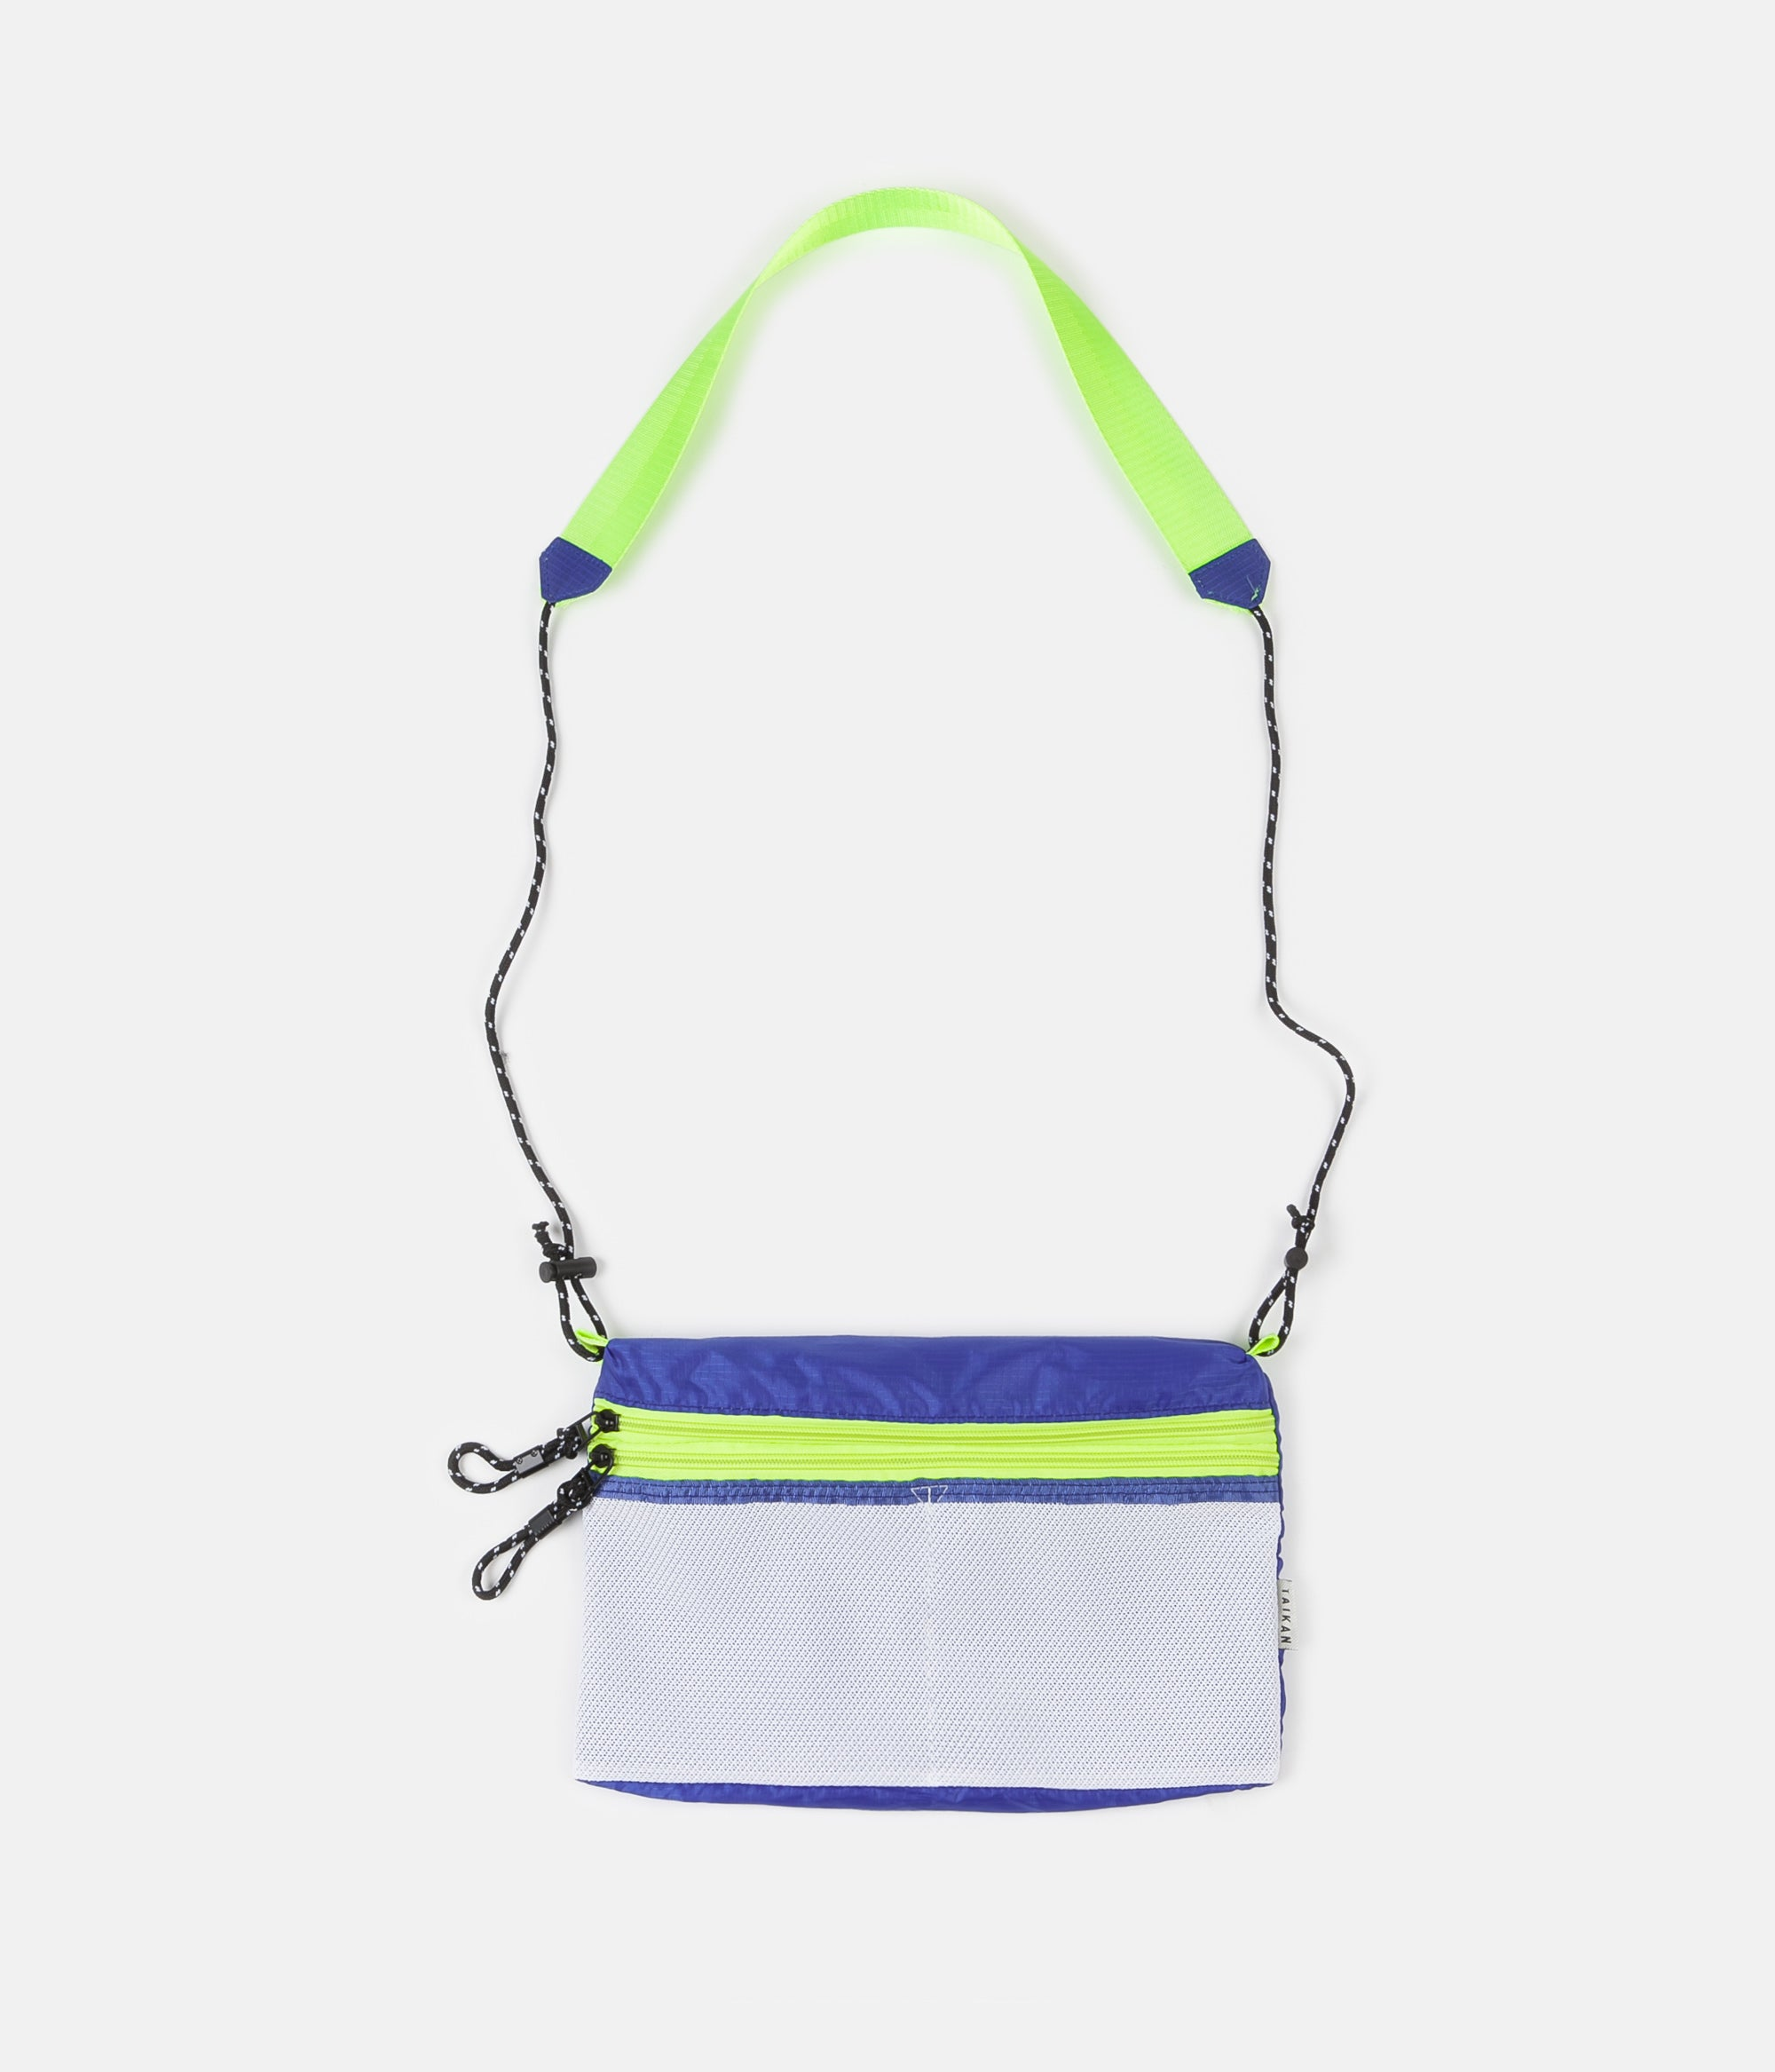 Taikan Everything Sacoche Bag - White / Blue / Yellow - Large